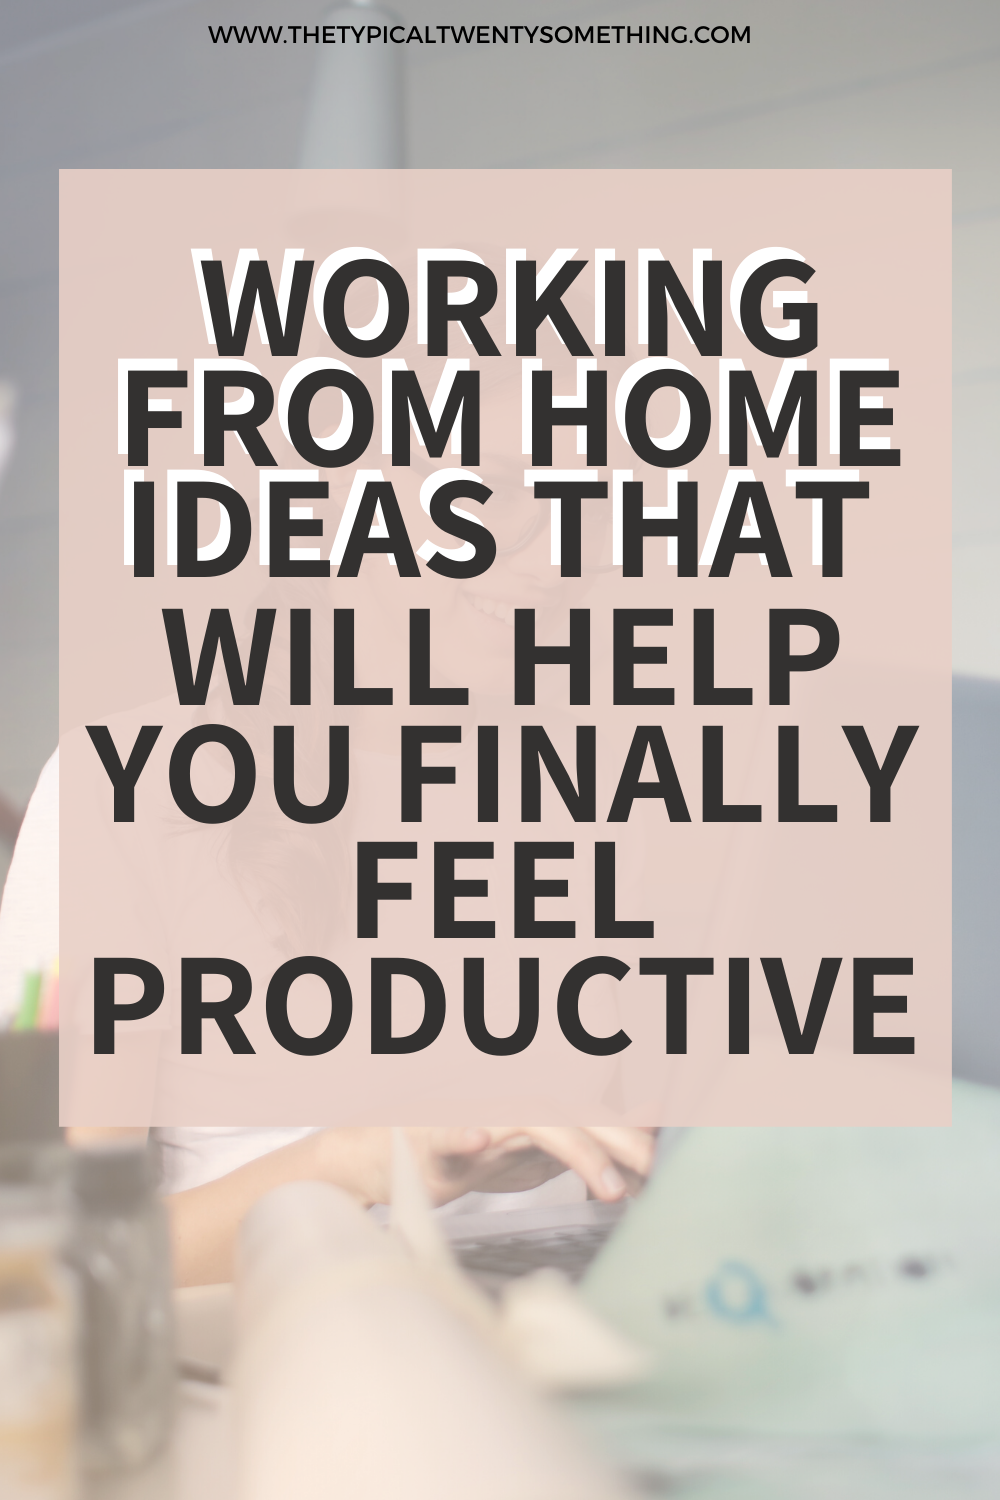 5 work from home desk accessories and tips that you can use to be more productive and be happier while having a great work from home routine. Work from home office, work from home outfit, work from home office, work from home tips, work from home office ideas